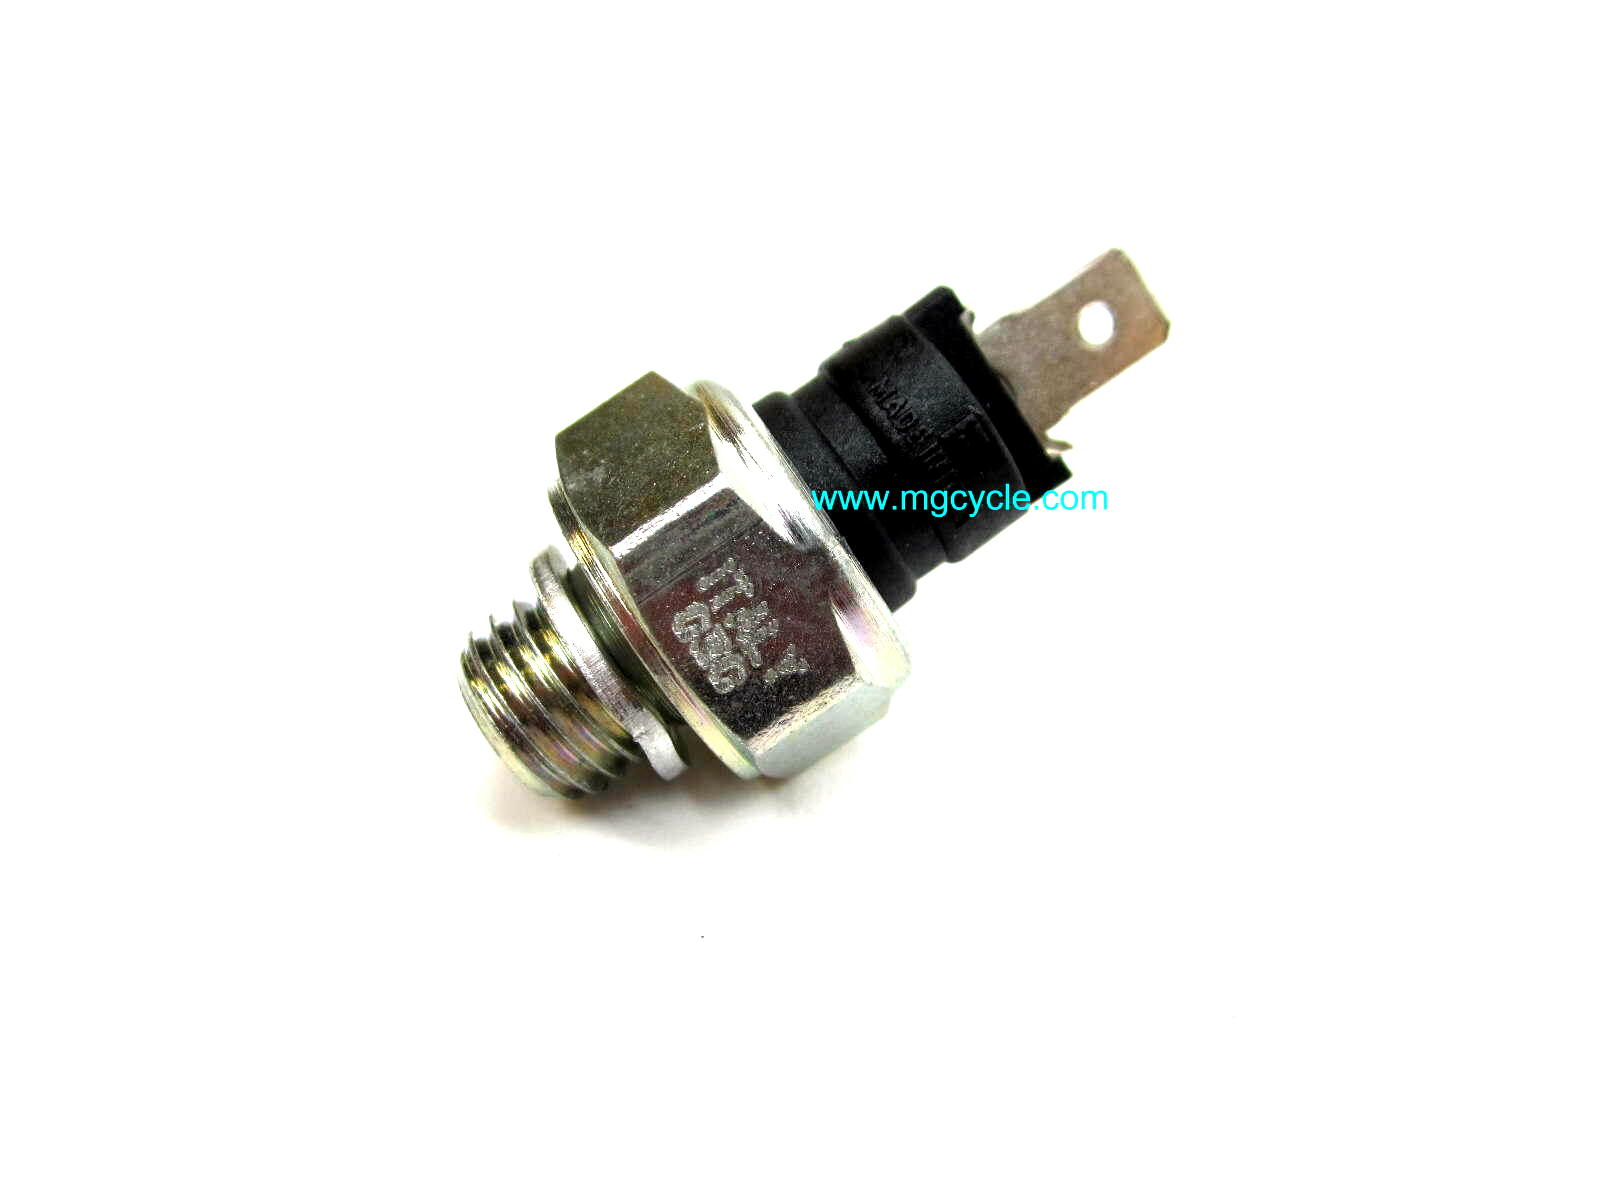 Oil pressure switch for Norge Griso Breva 1100/1200 Stelvio